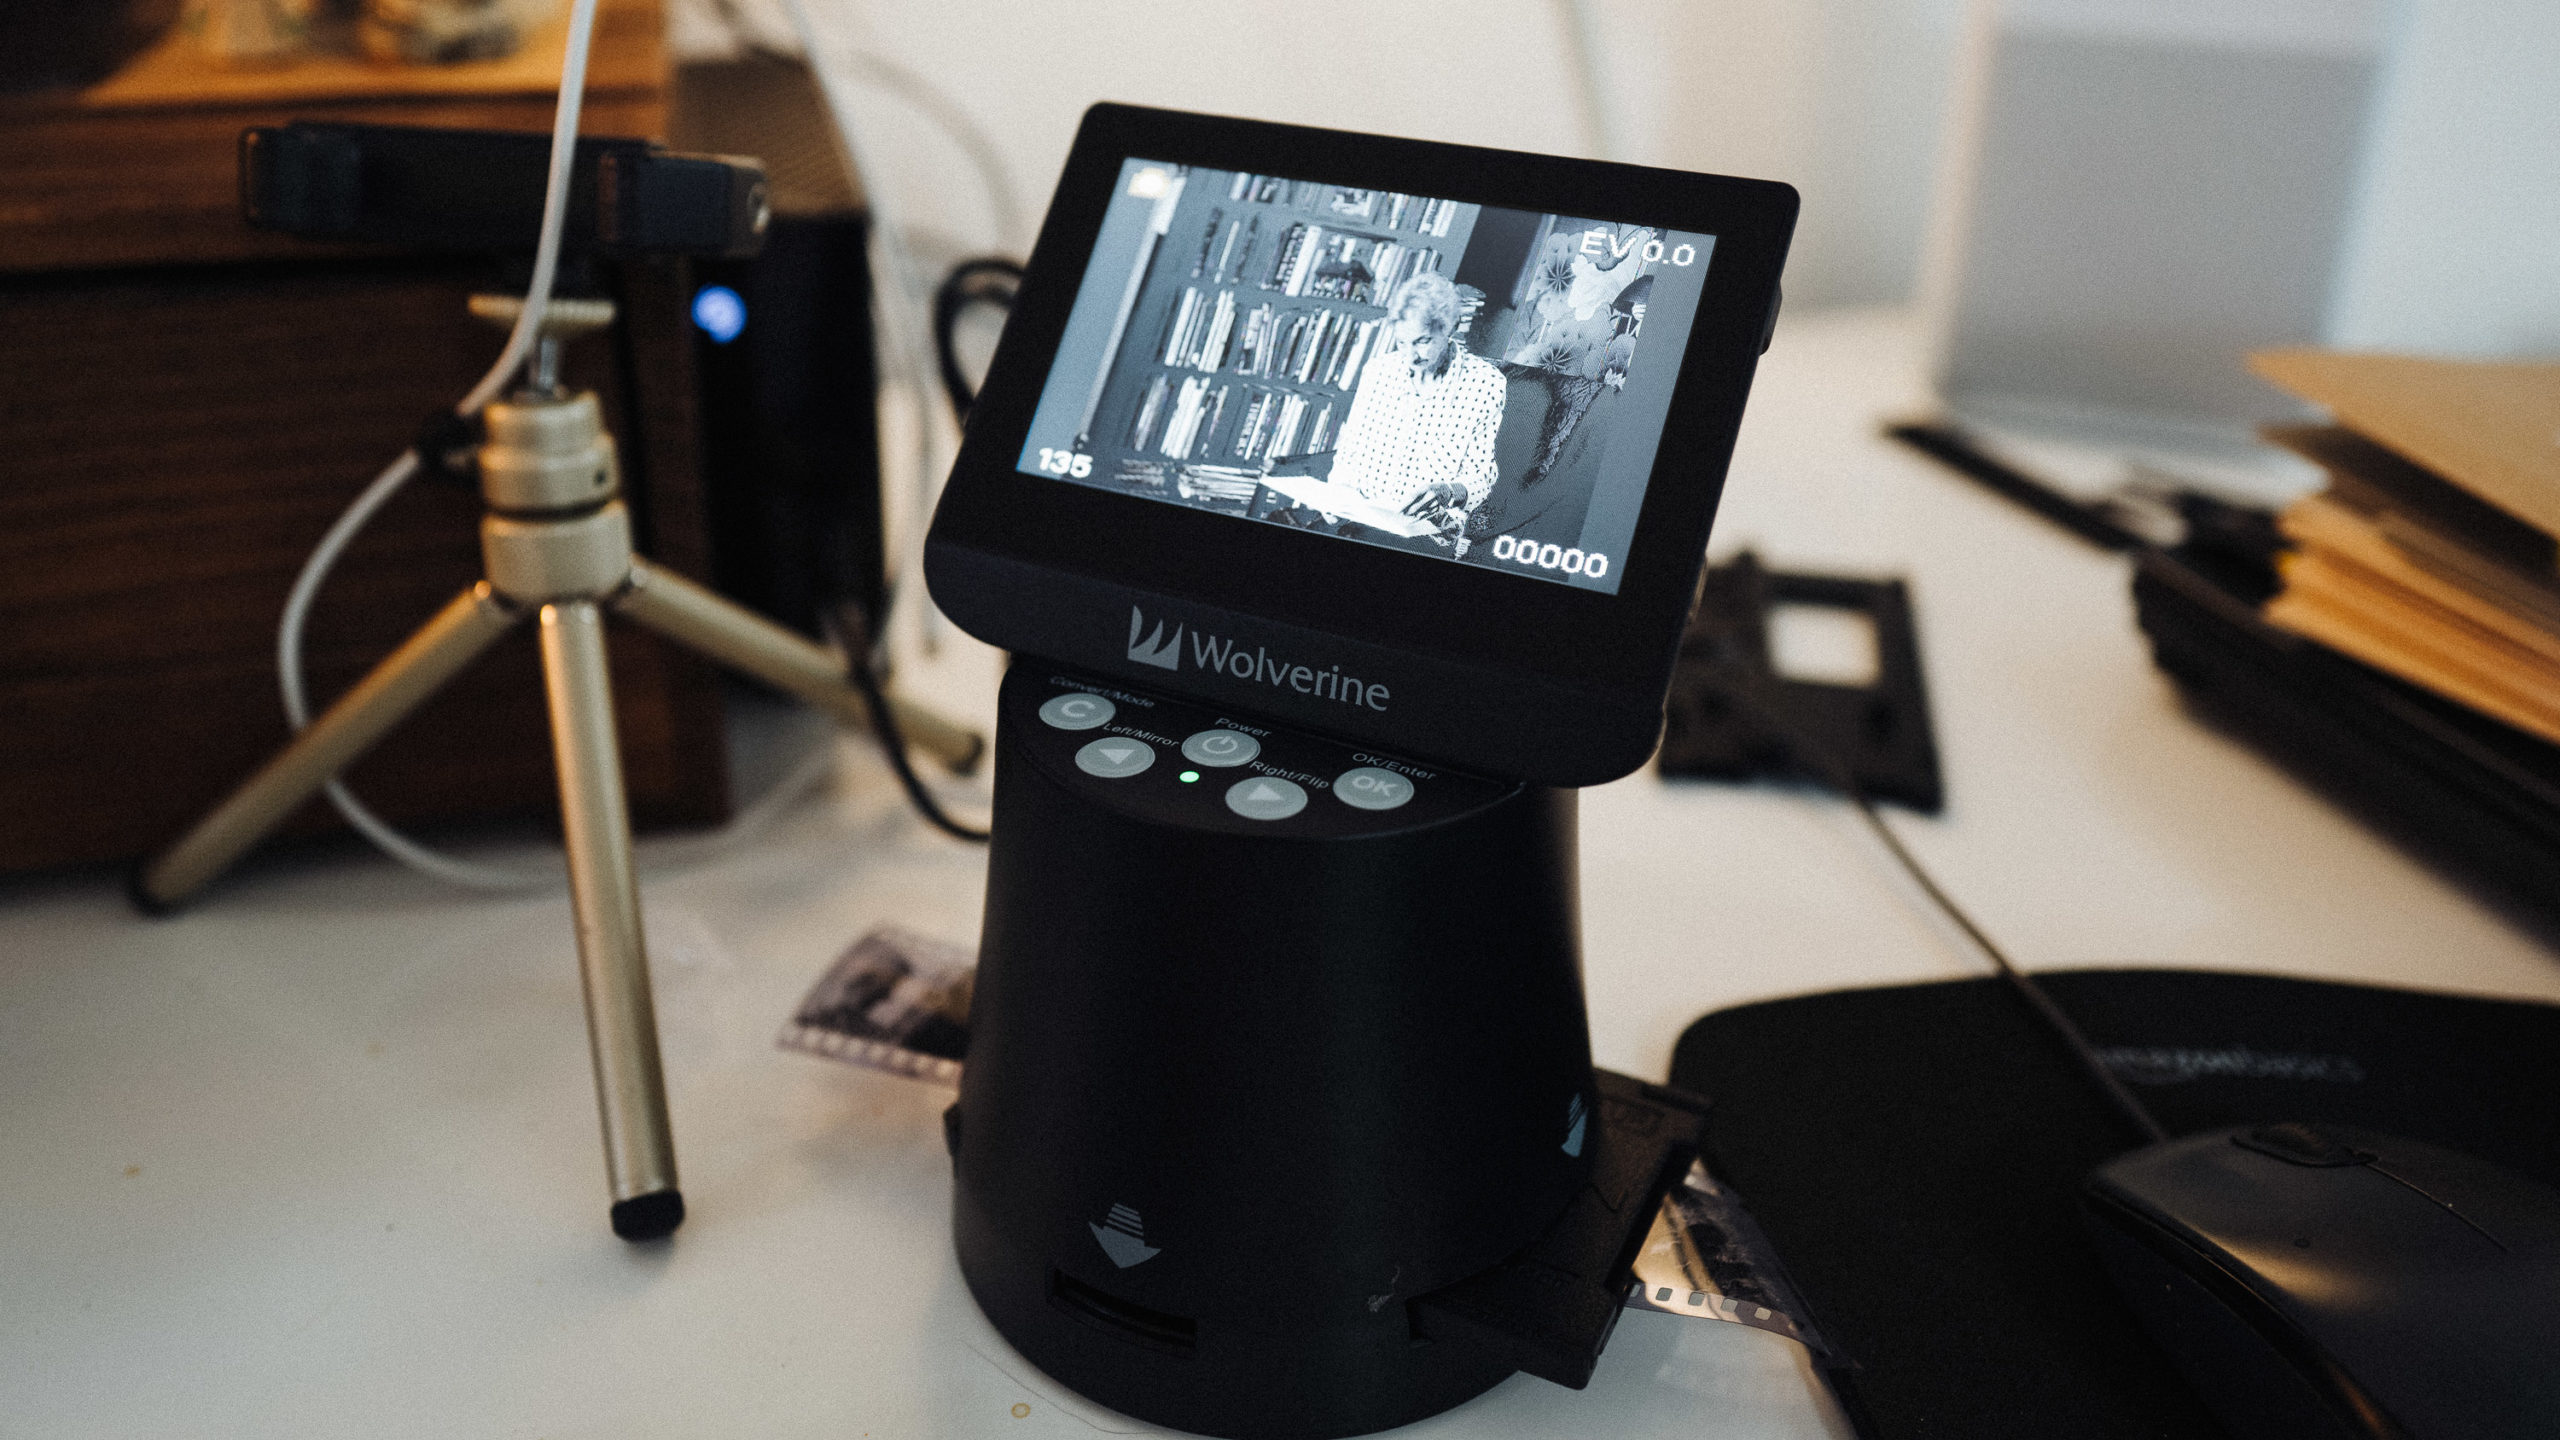 A scanner that converts negatives to digital